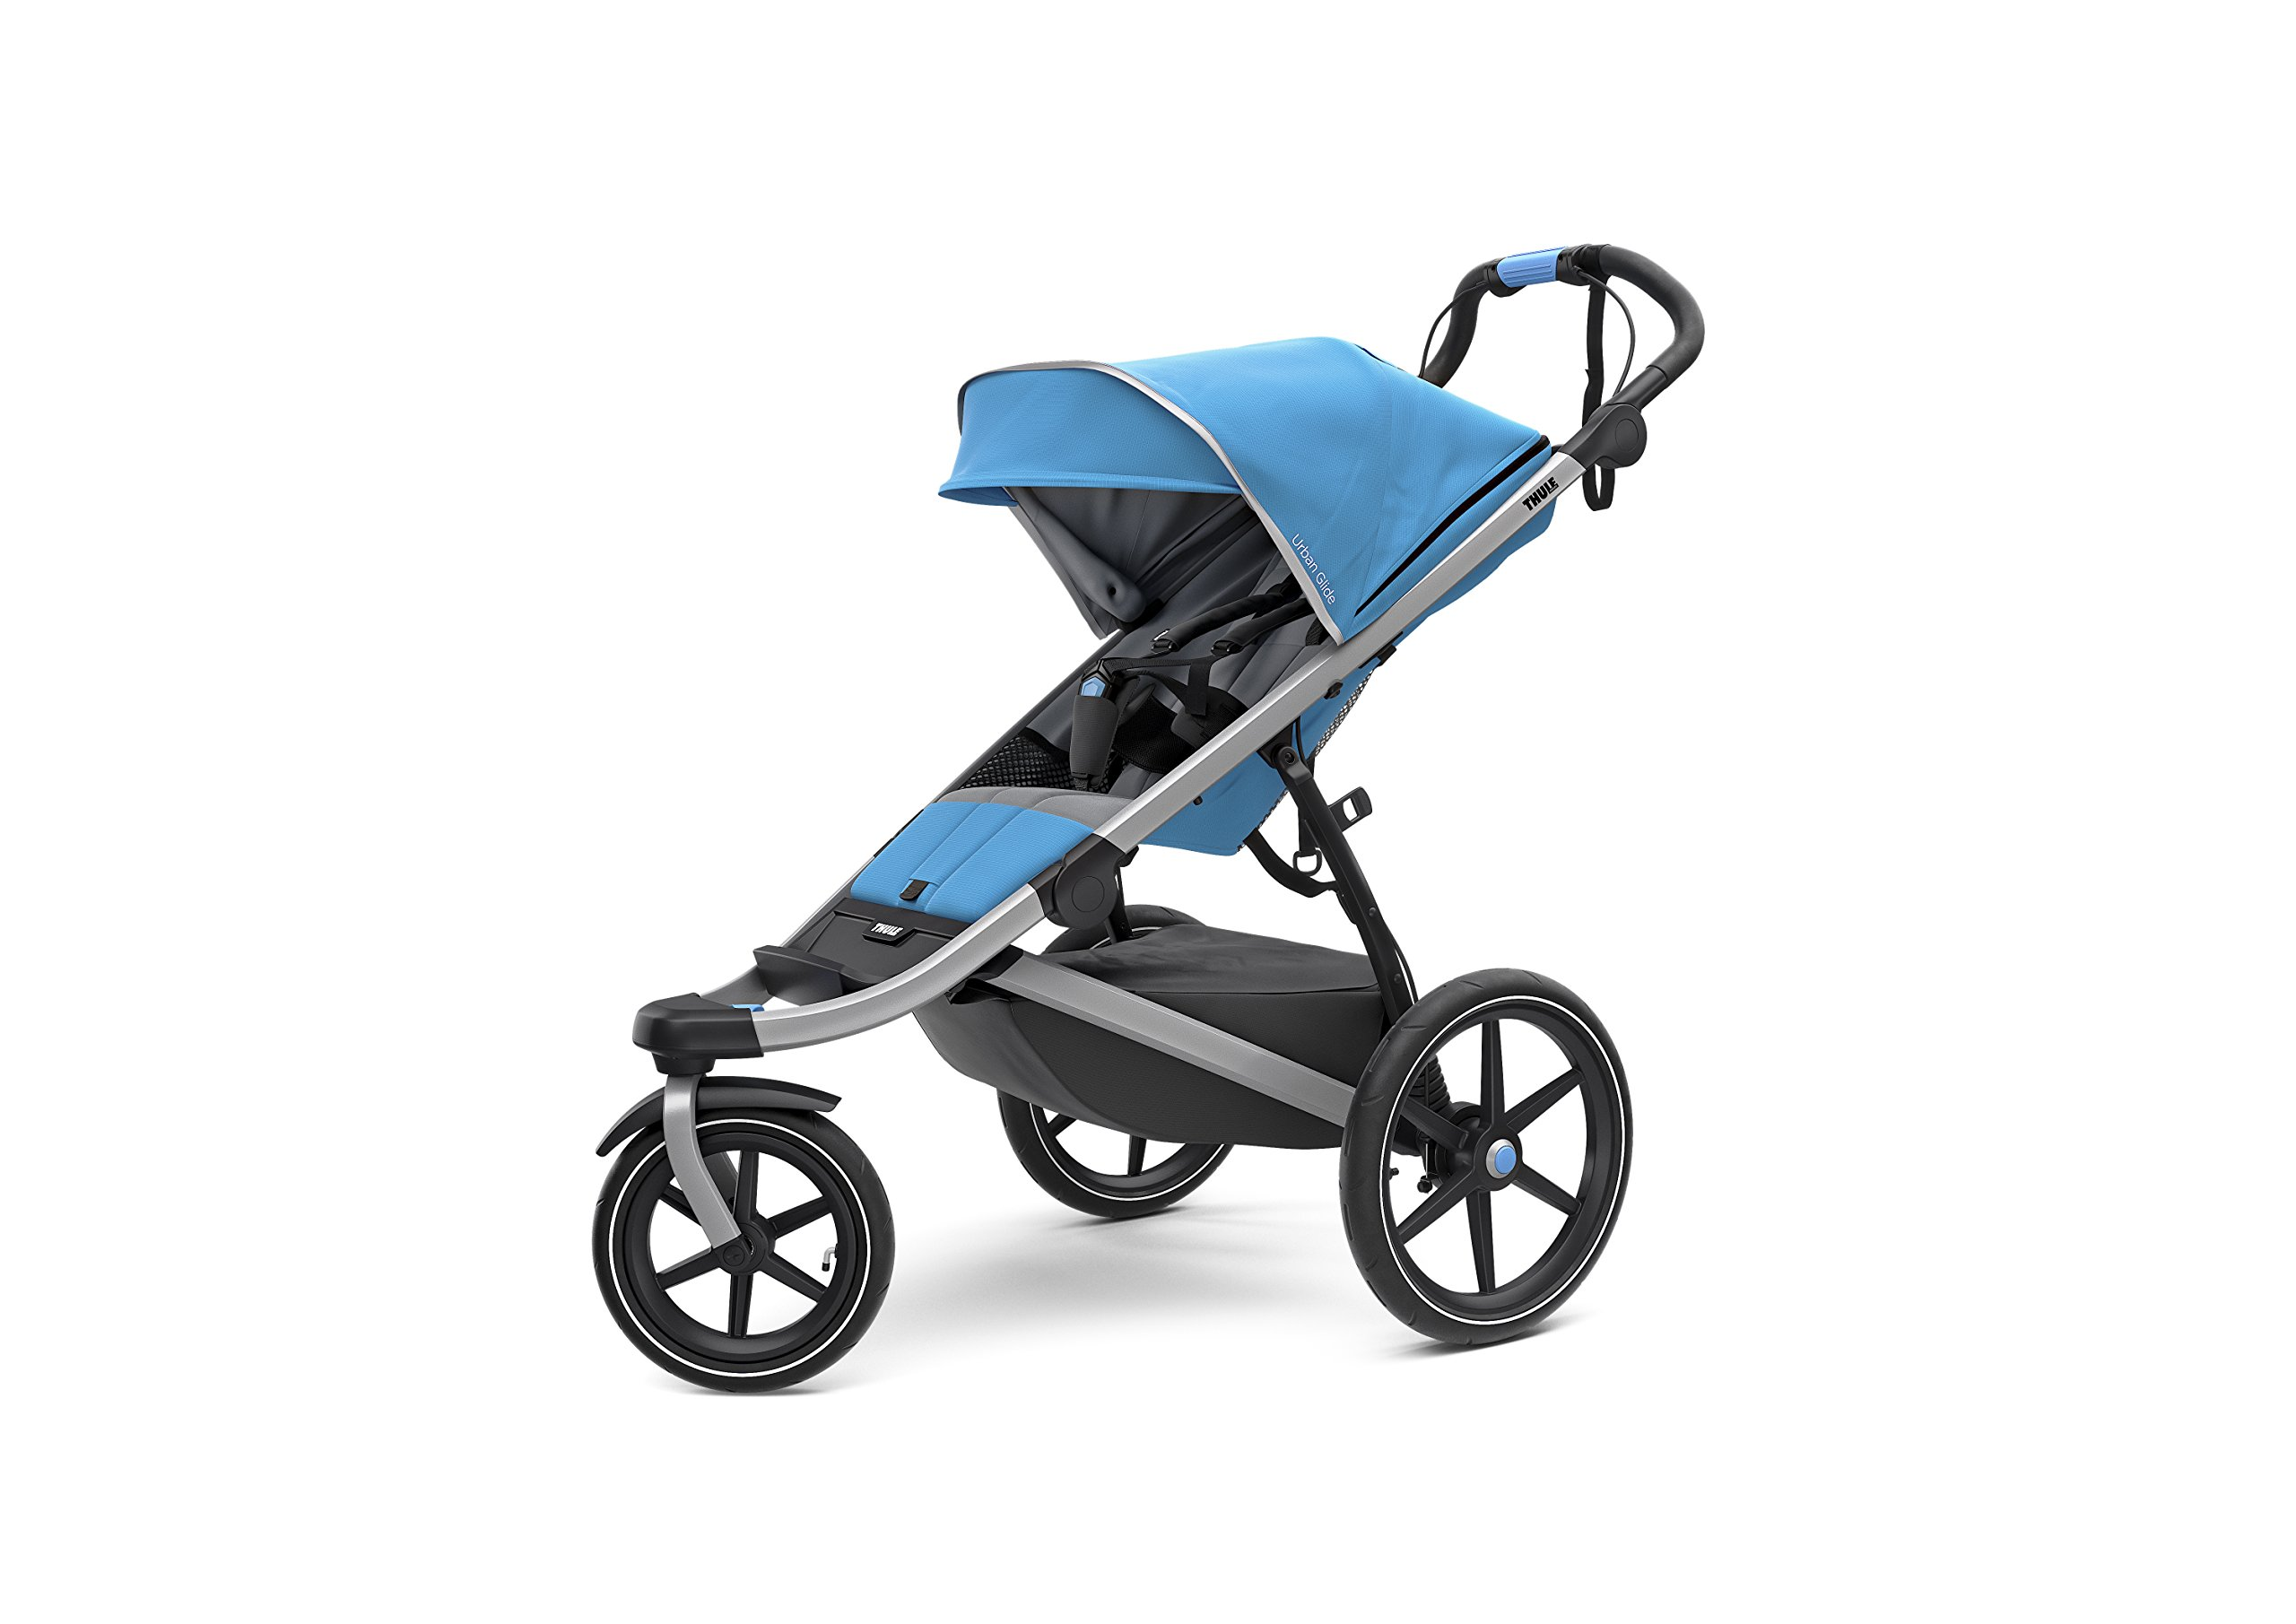 Image of the Thule Urban Glide 2.0 Jogging Stroller (Thule Blue w/ Silver Frame)